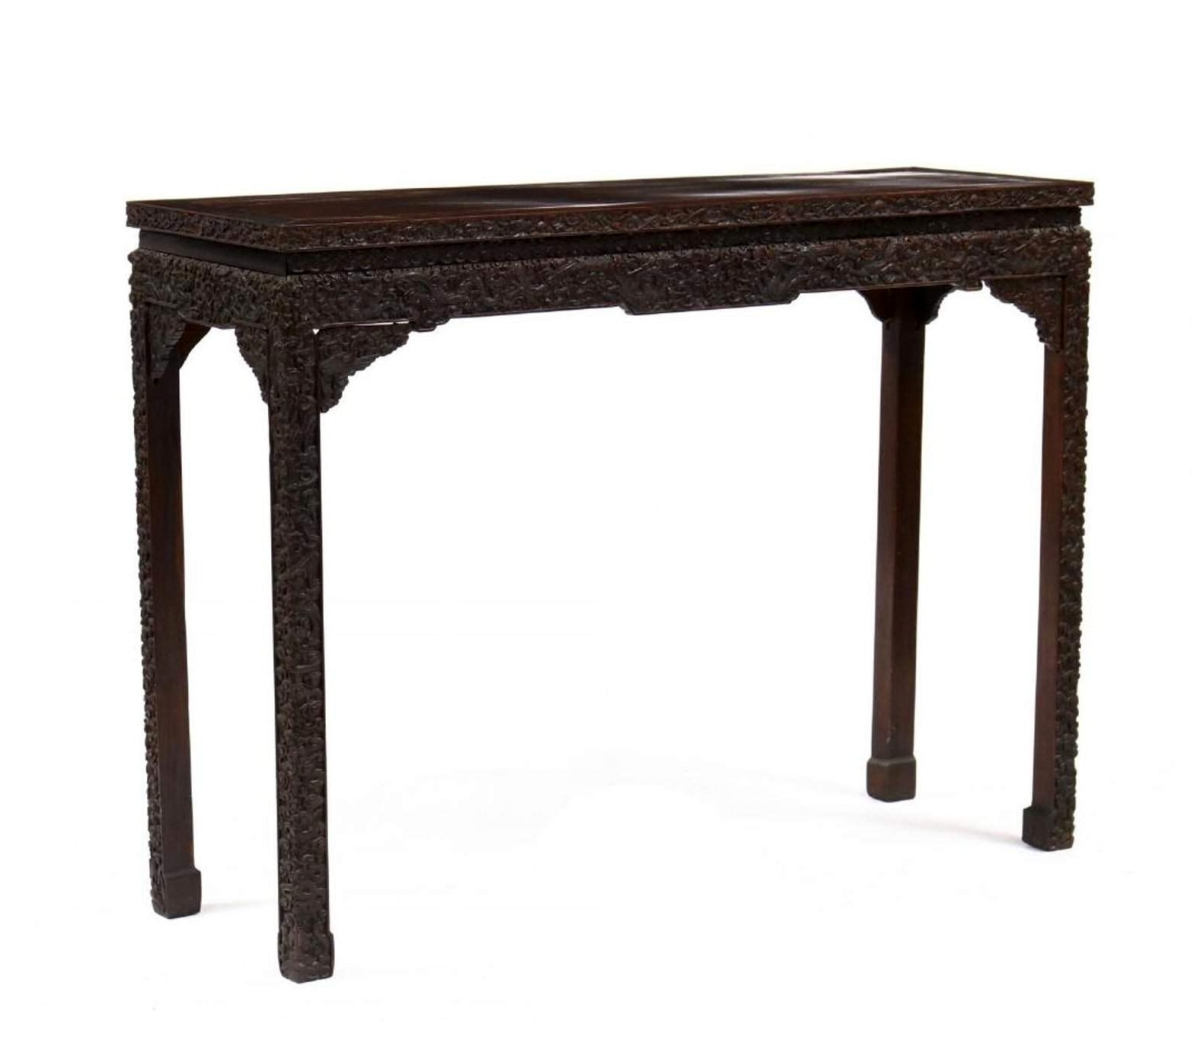 Across the block ab leland little chinese console table geotapseo Gallery